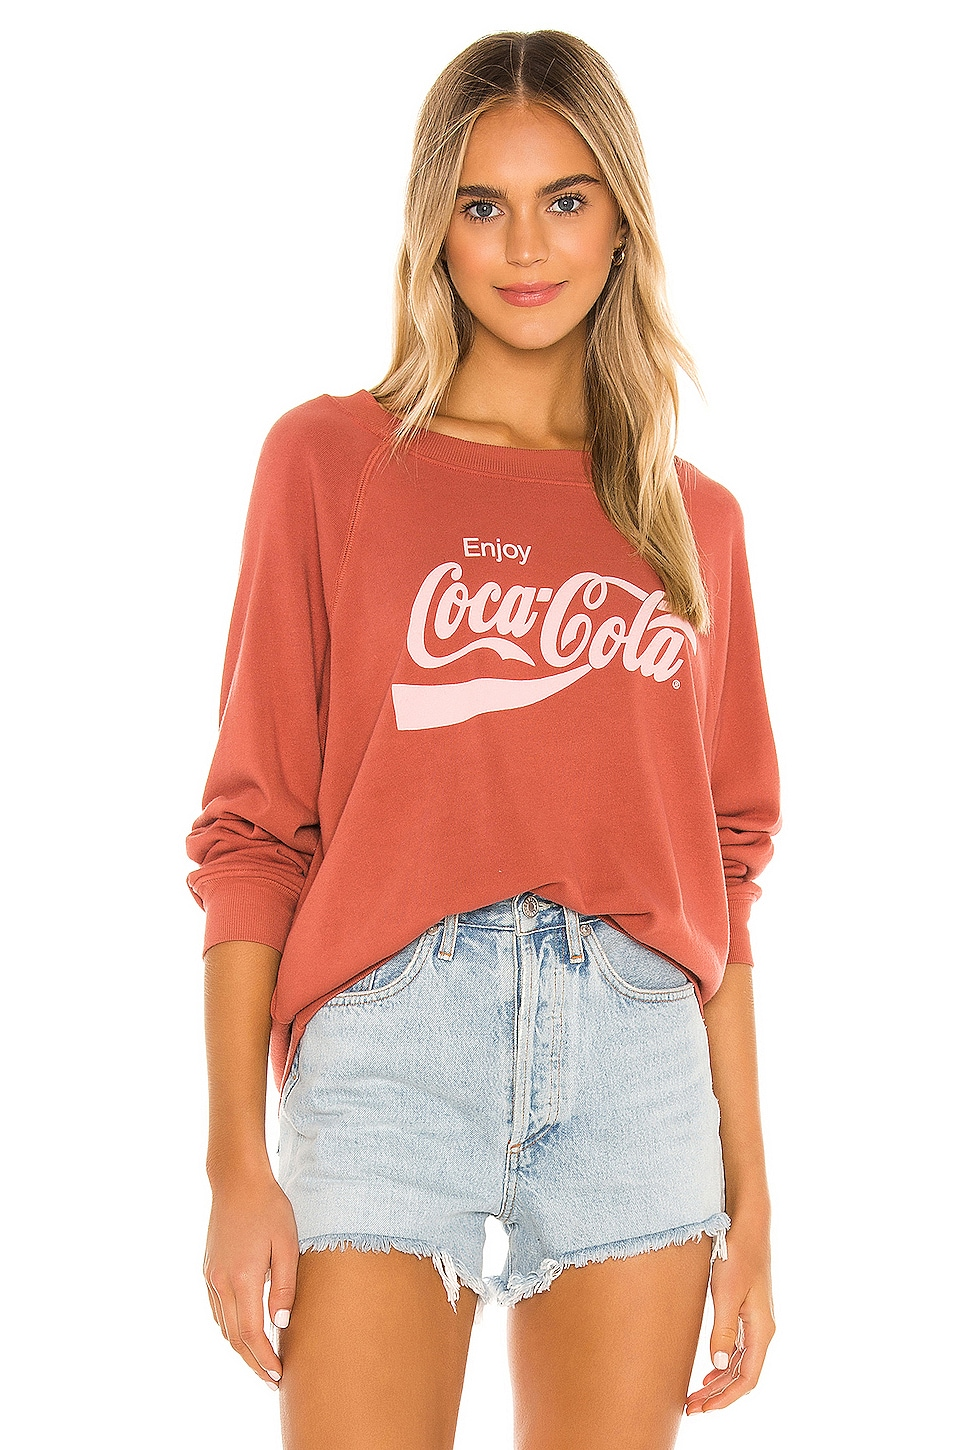 Wildfox Couture Enjoy Coco-Cola Sommers Sweatshirt in Sienna